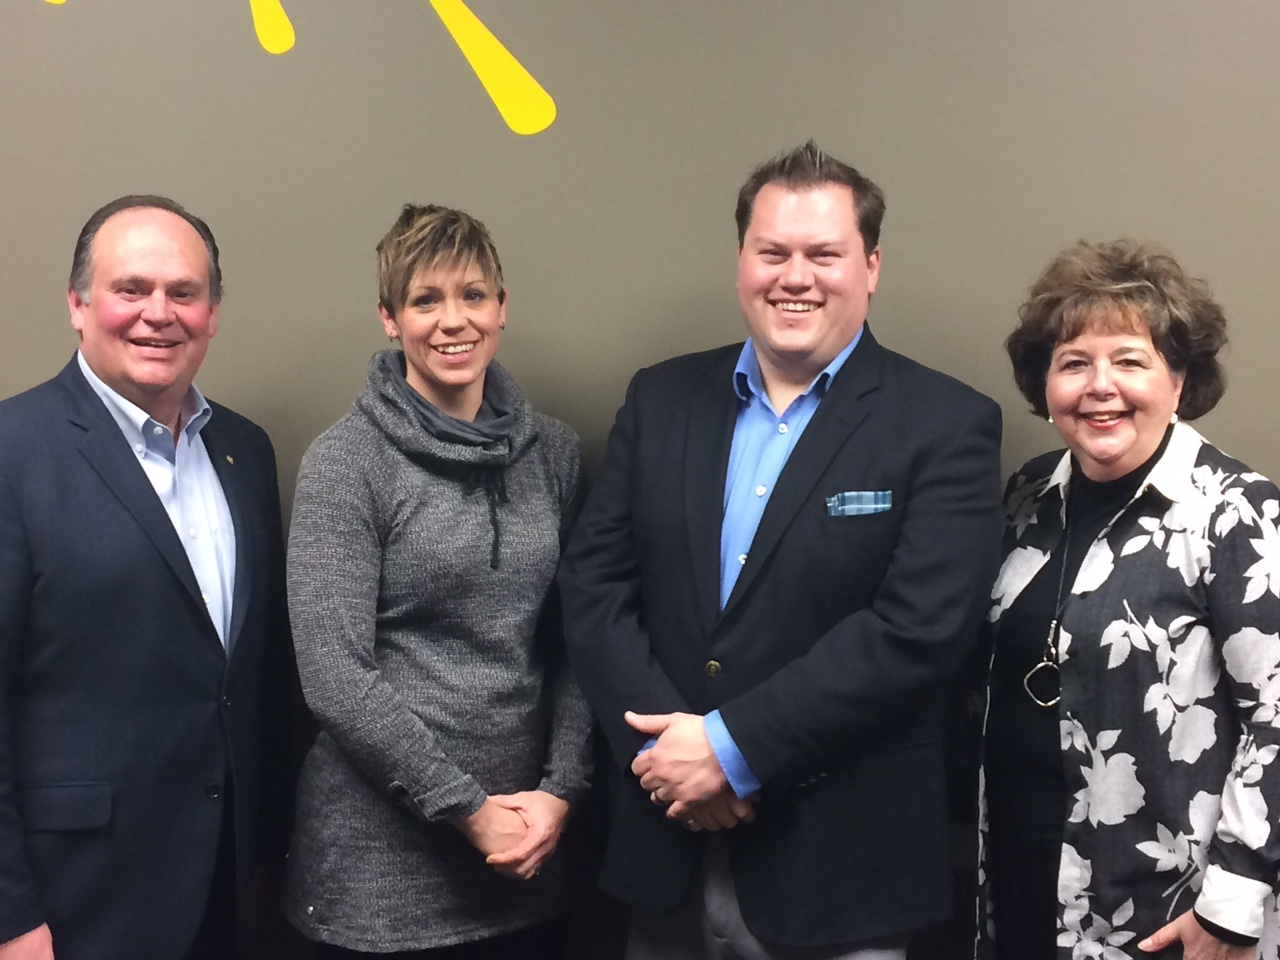 Dan Moloney (2nd from right) pictured with his team Chris Hill, Denise Travers and Heather Somerville